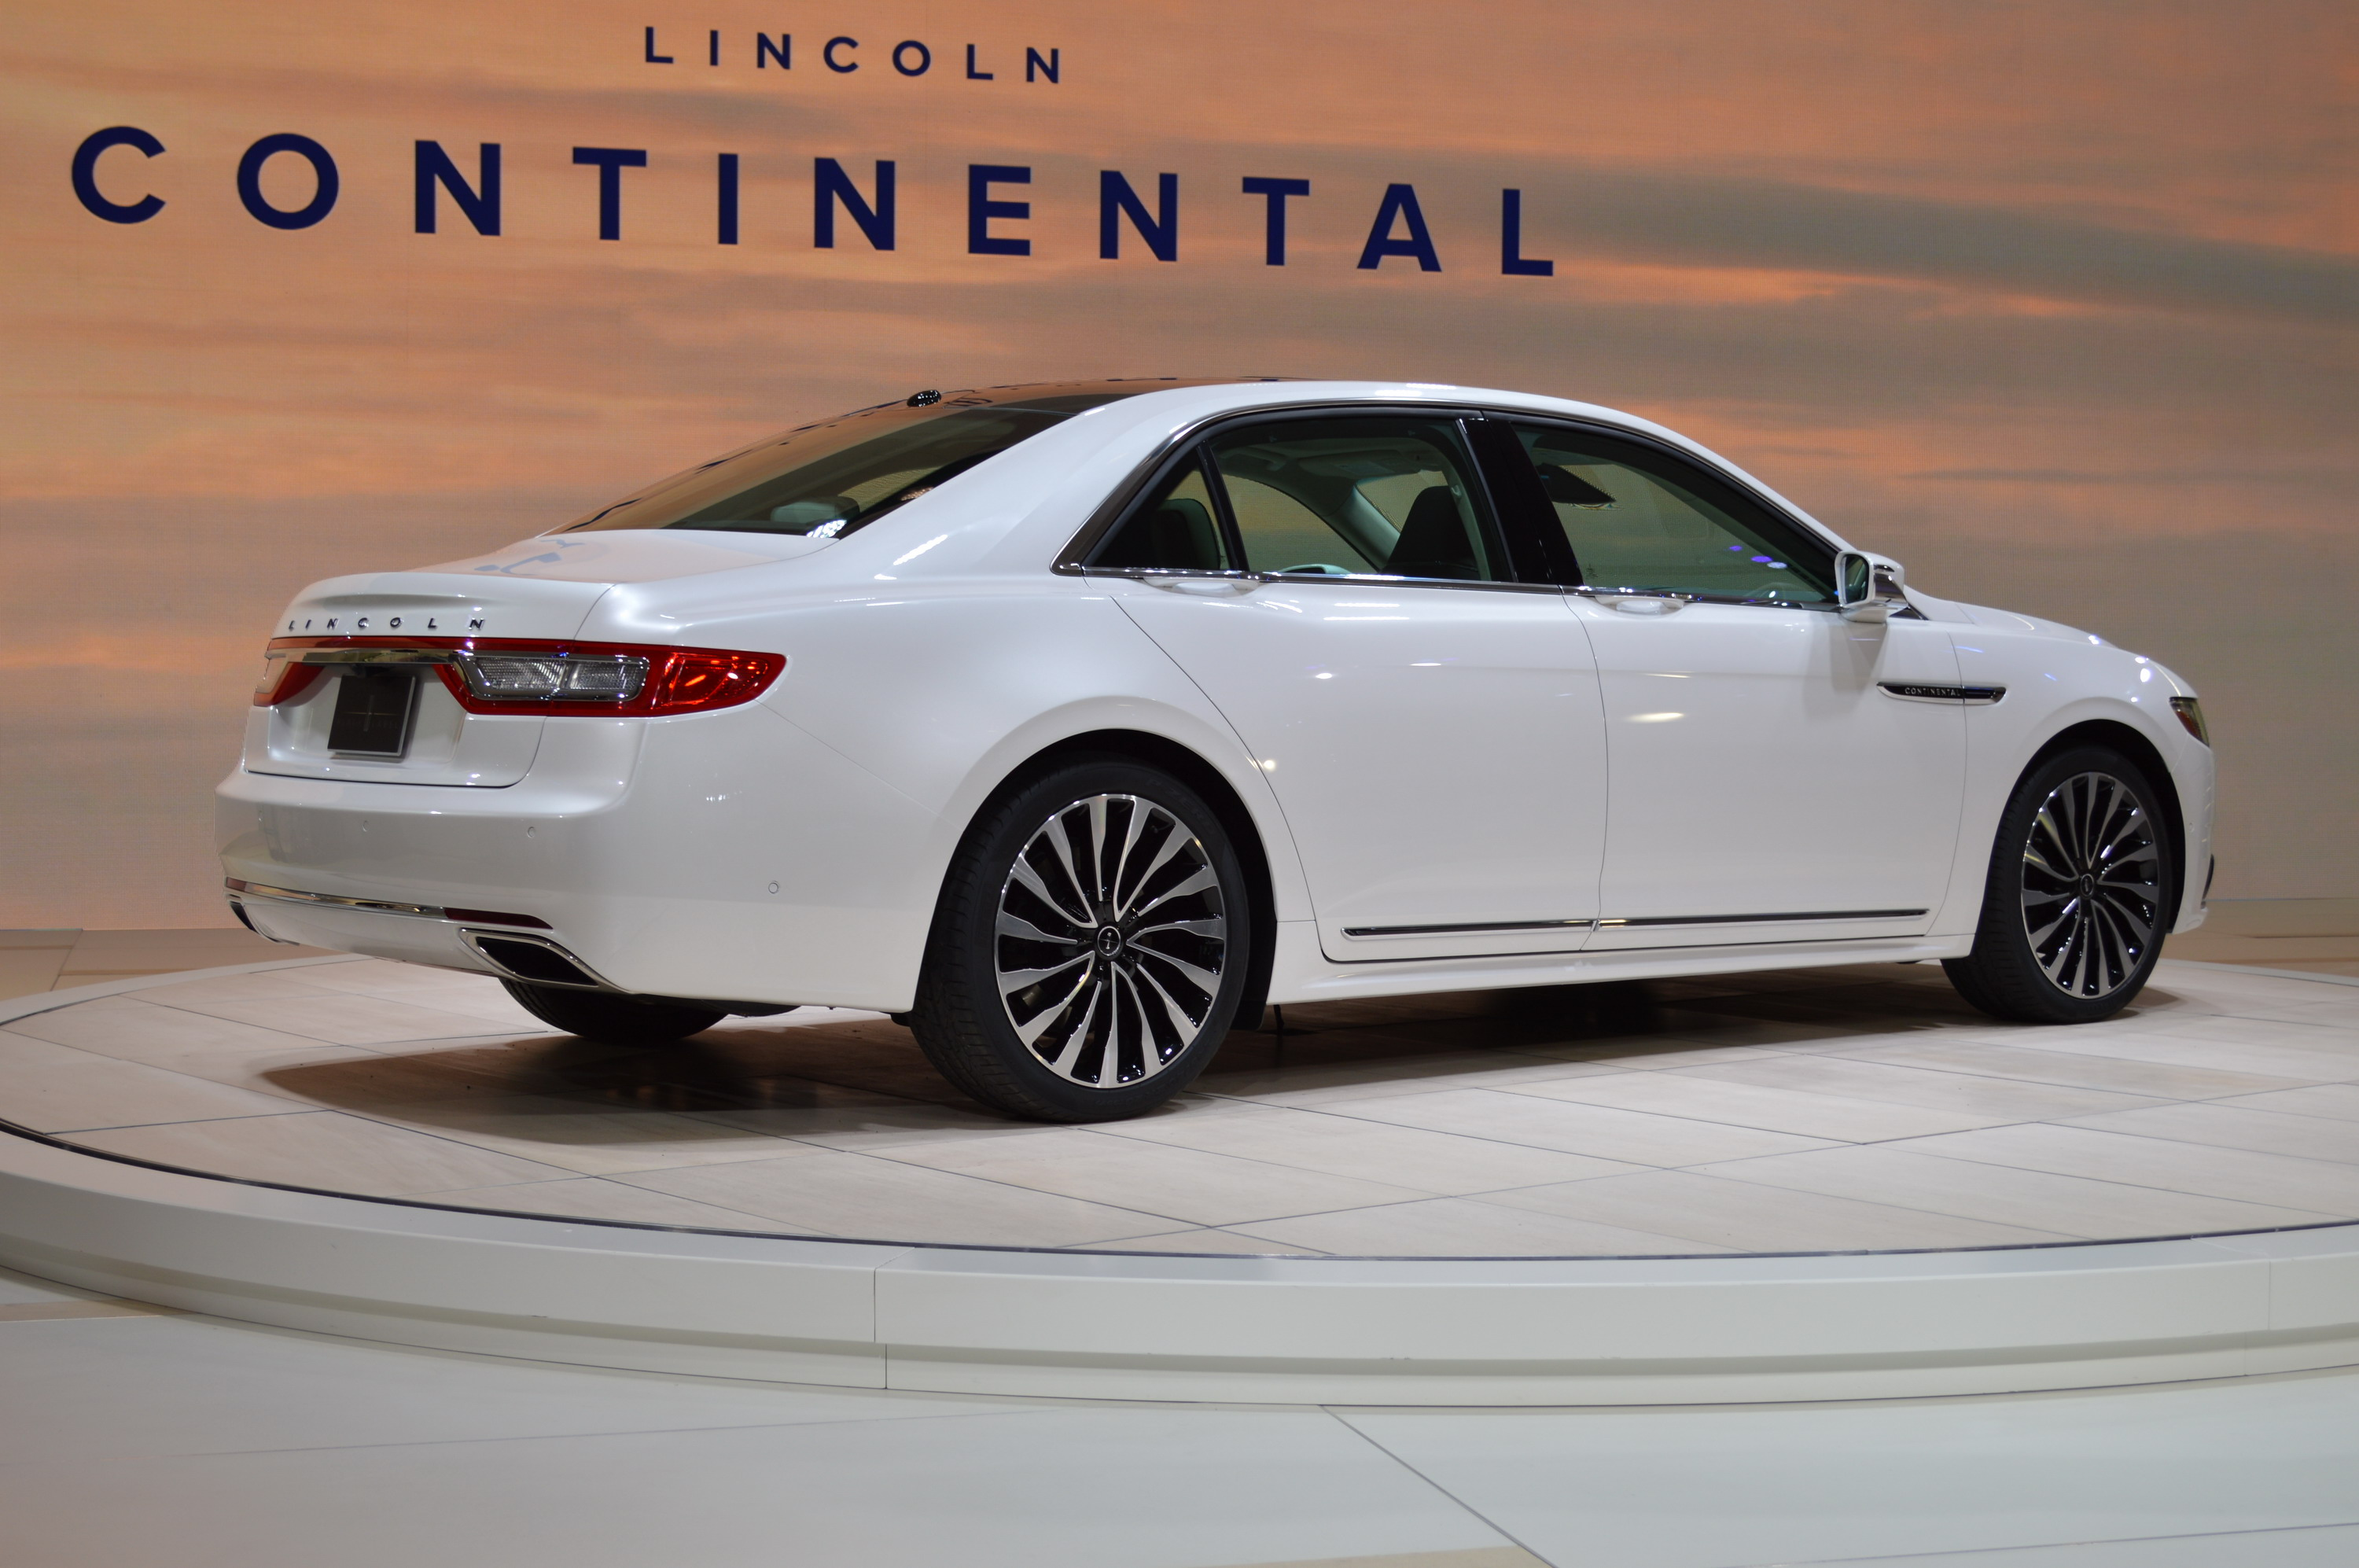 https://pictures.topspeed.com/IMG/jpg/201601/2017-lincoln-continental-28.jpg